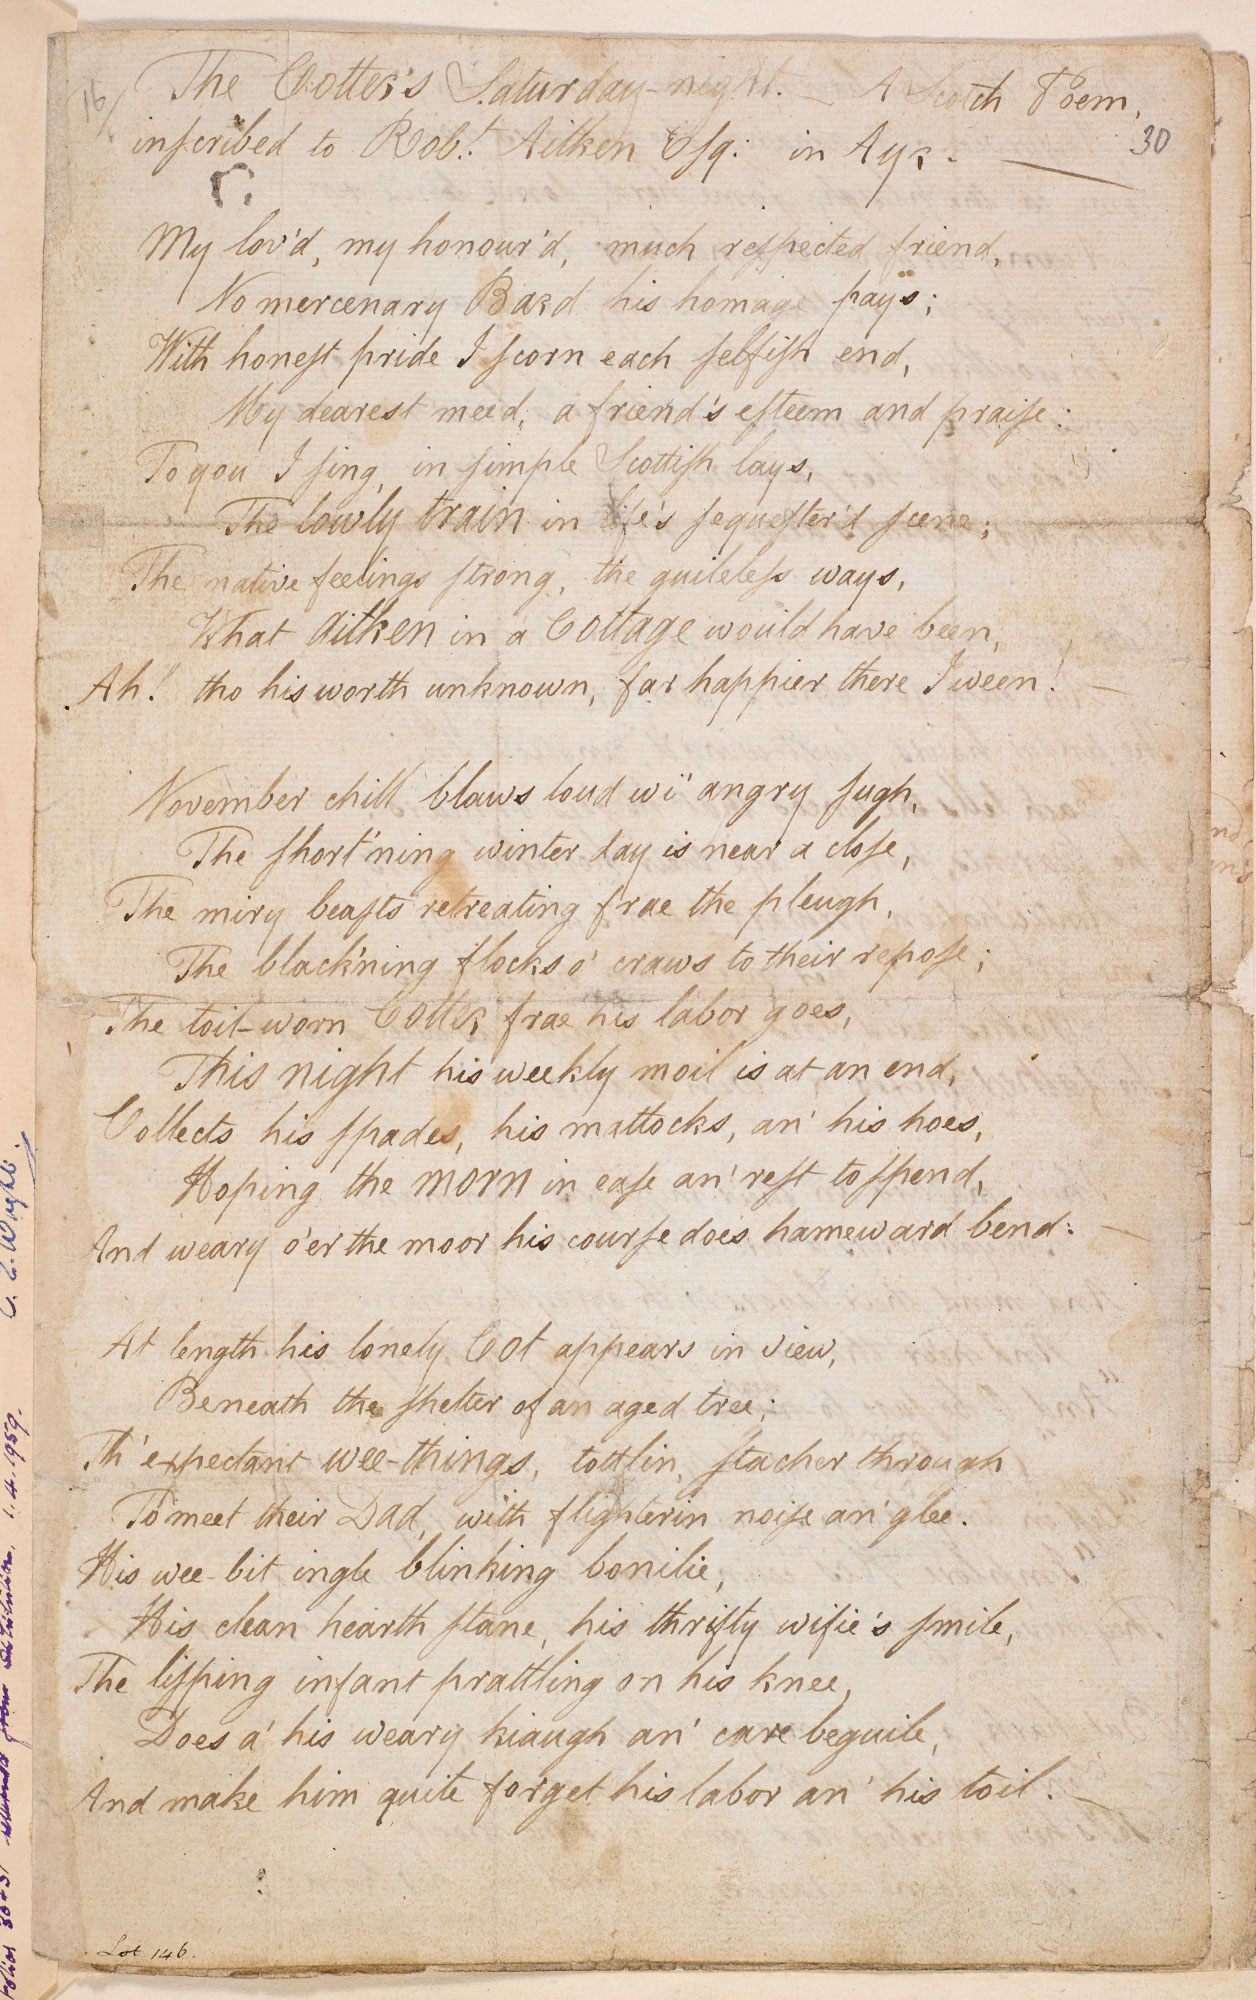 Manuscript of 'The Cotter's Saturday Night' by Robert Burns